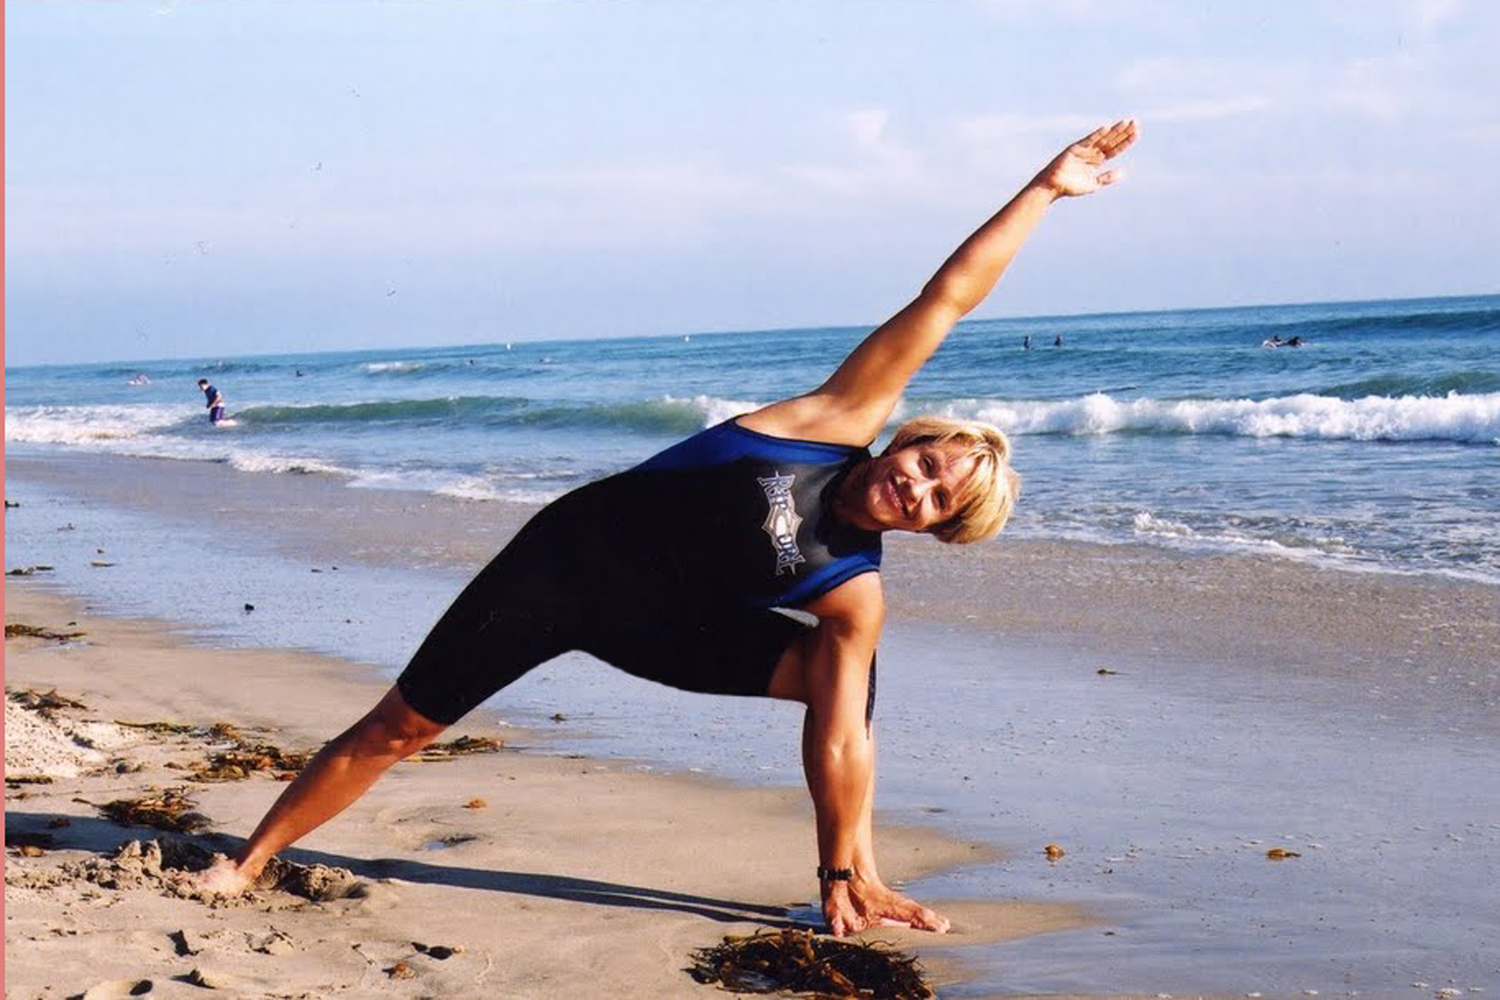 enjoy a morning yoga class led by peggy right on the beach before surfing!